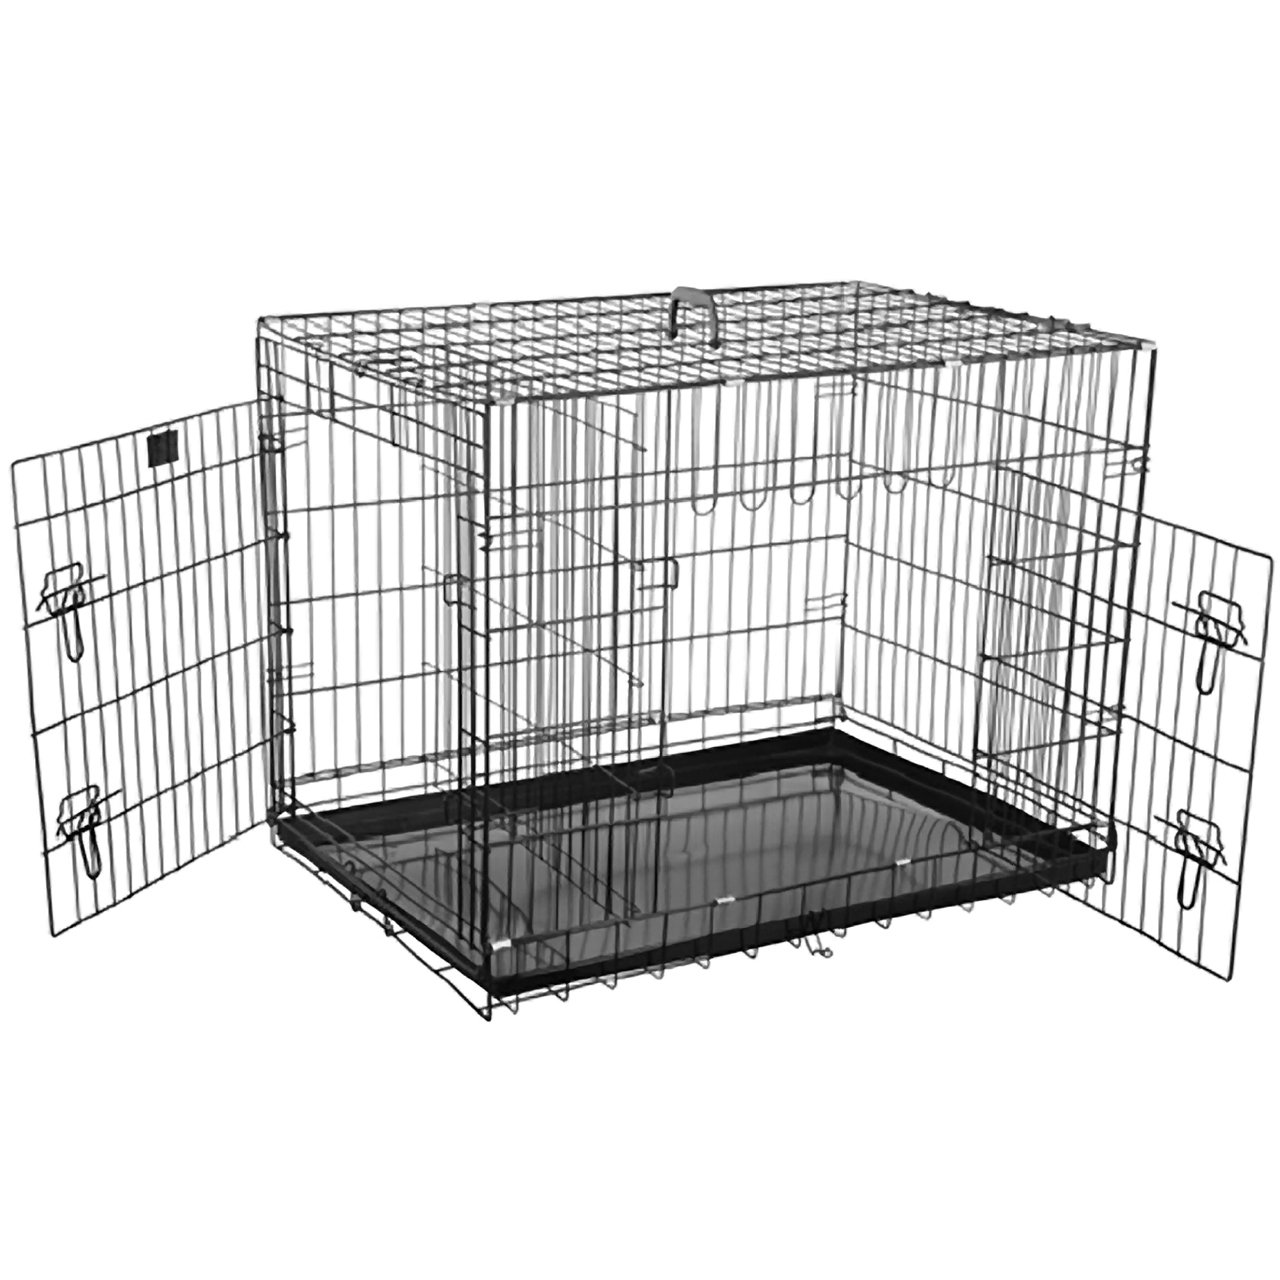 91.44 cm Pet Trex 2202 36 Inch Dog Crate Folding Pet Crate Kennel for Dogs, Cats or Rabbits, 36